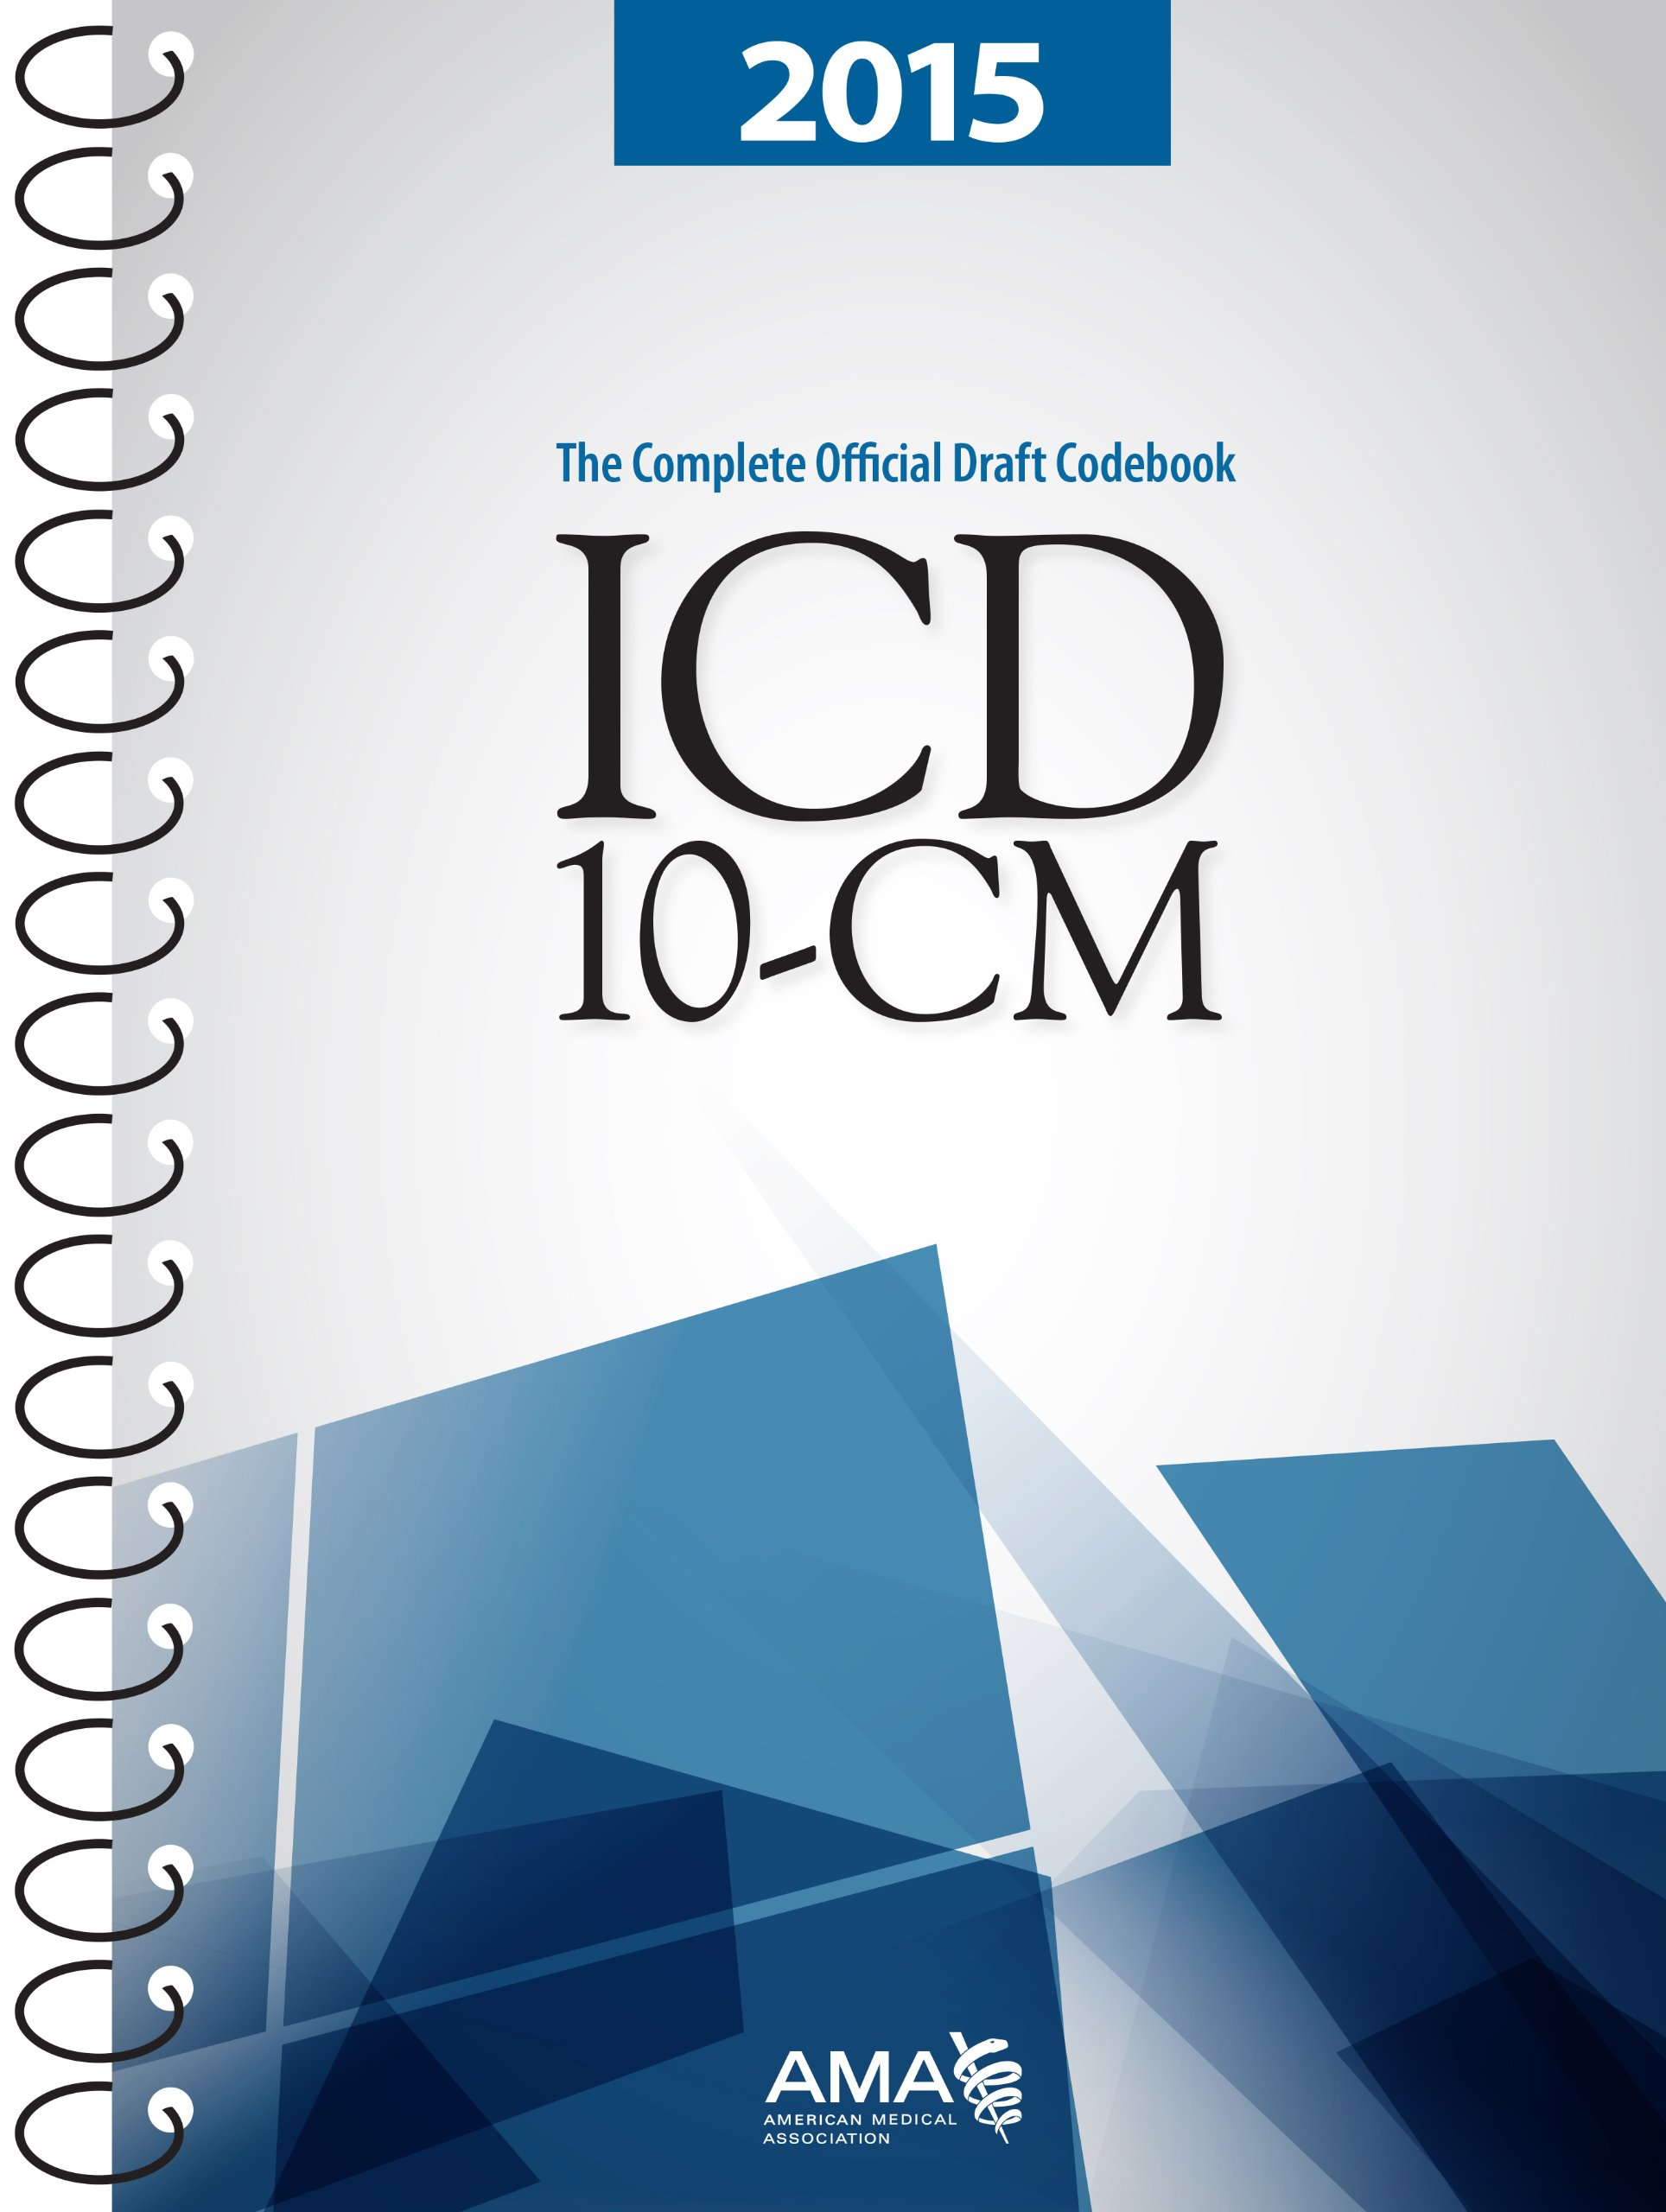 ICD-10-CM 2015: The Complete Official Codebook